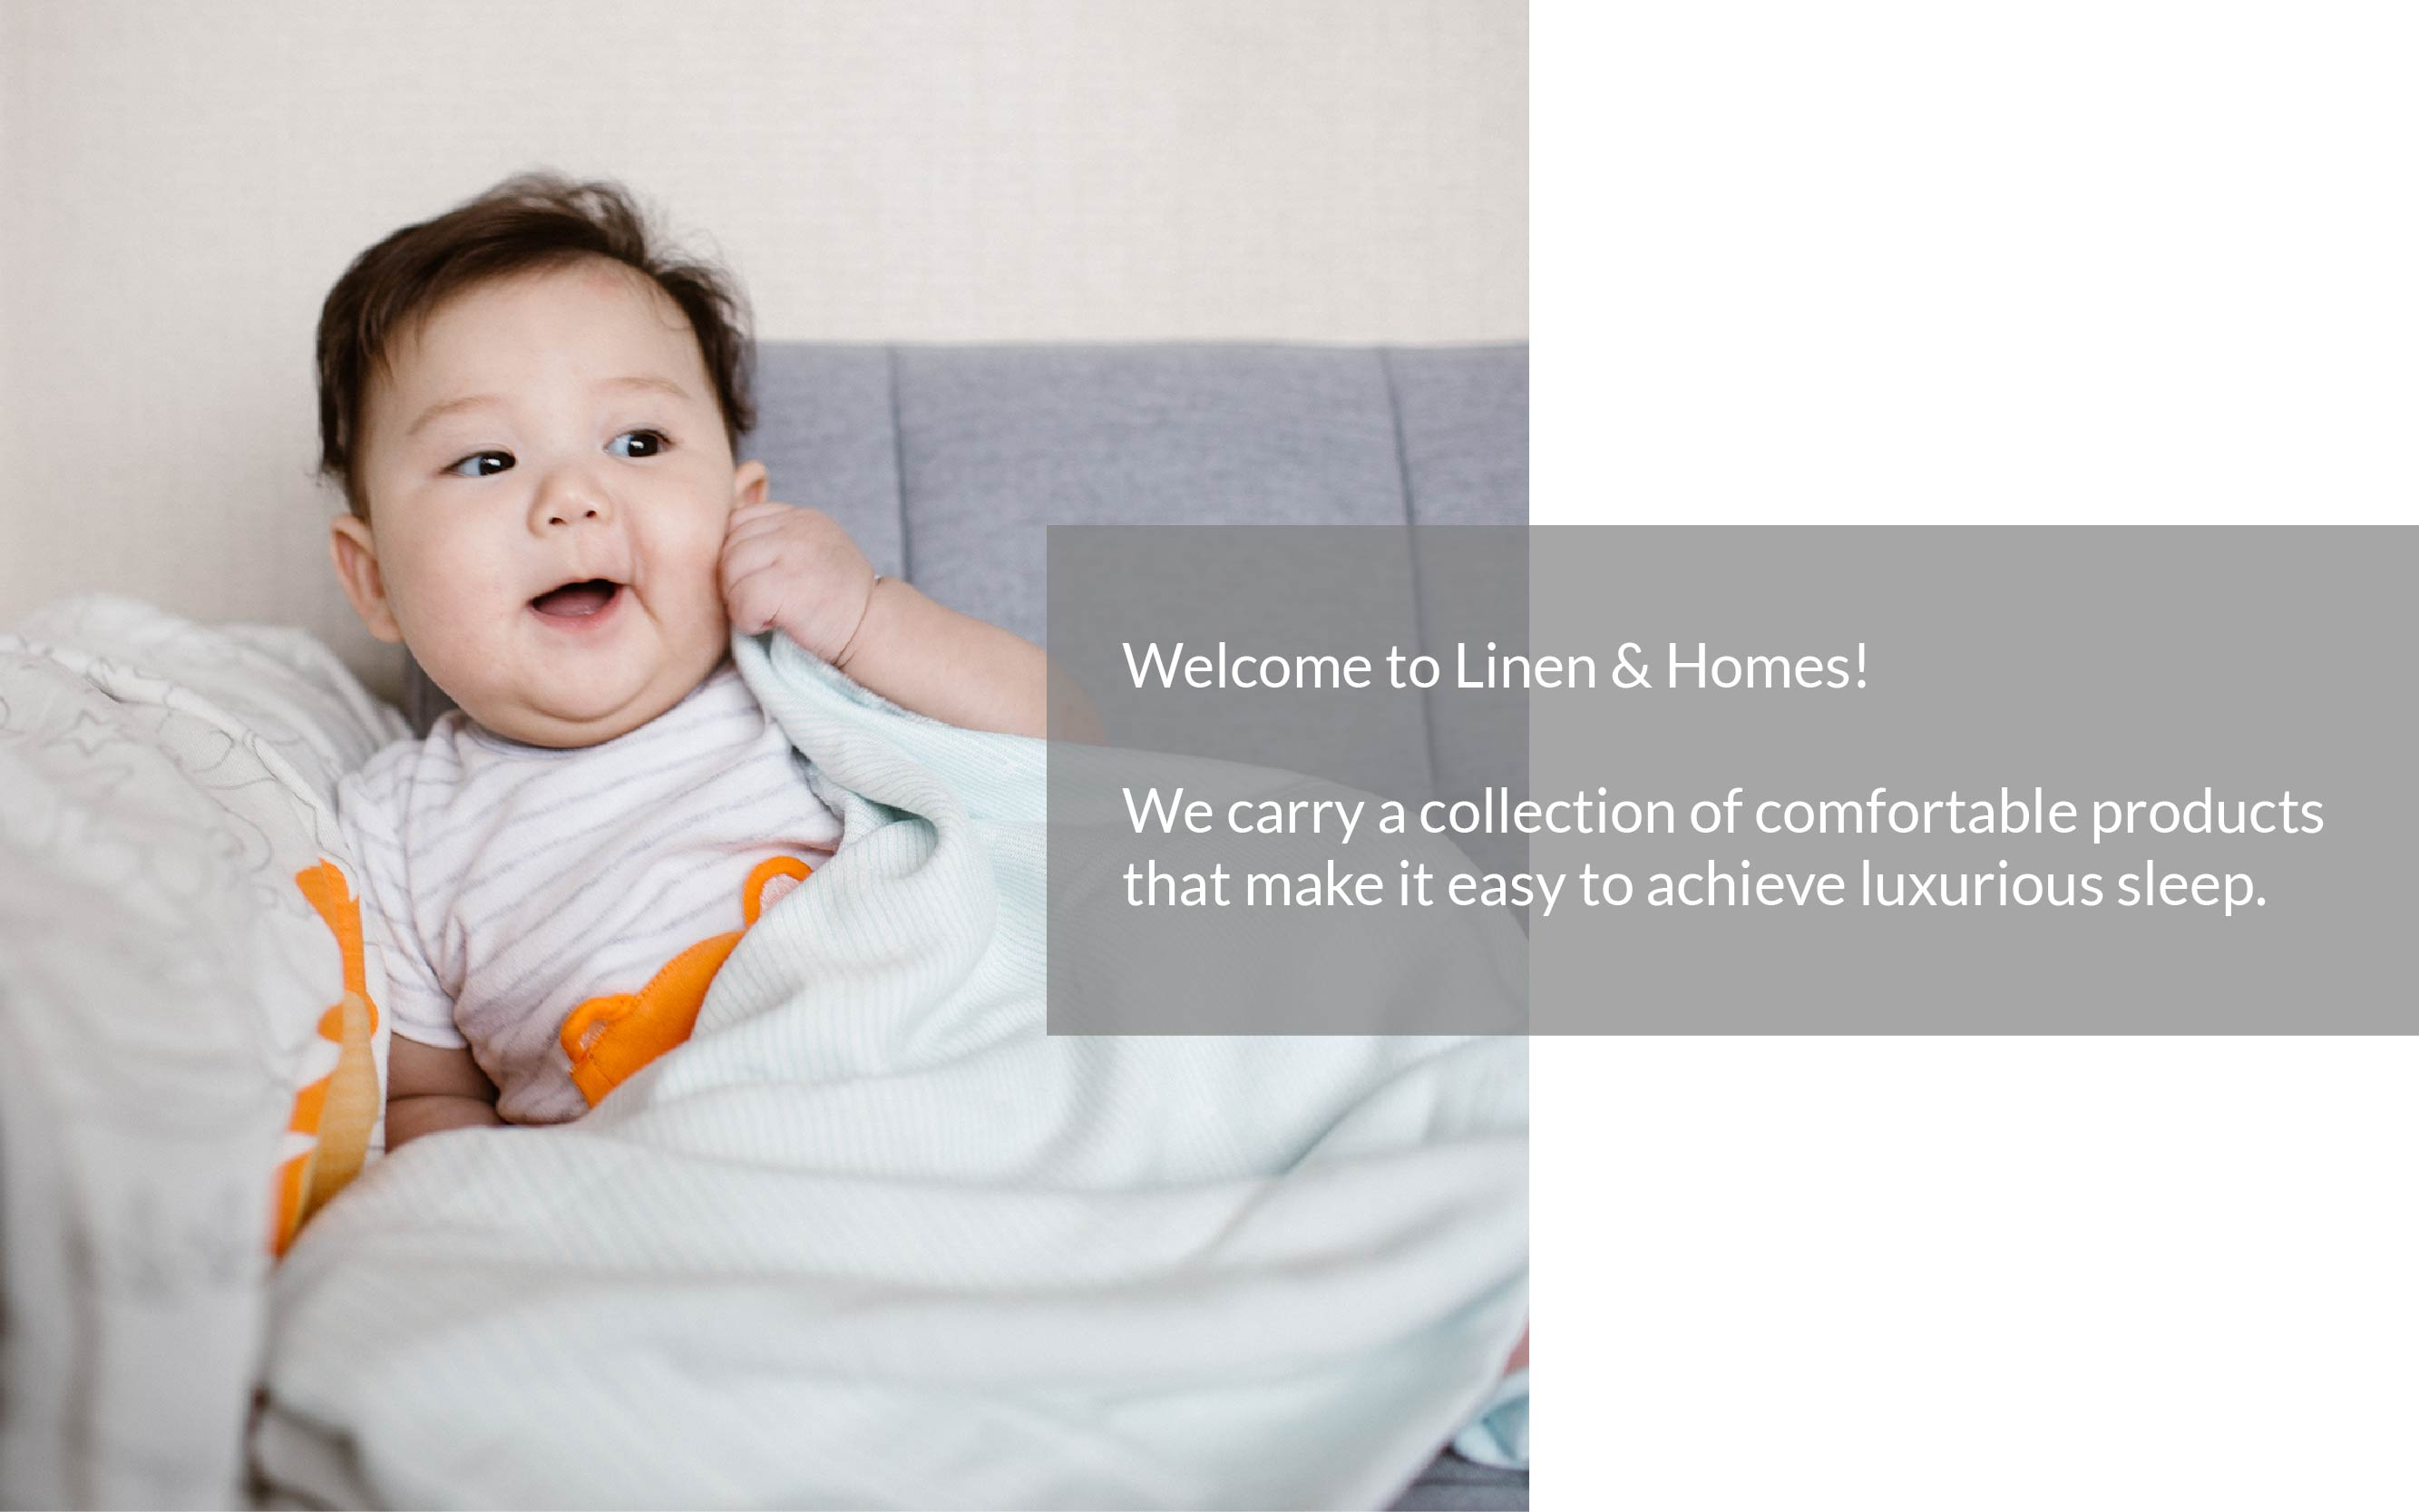 Welcome to Linen & Homes! We carry a collection of comfortable products  that make it easy to achieve luxurious sleep.